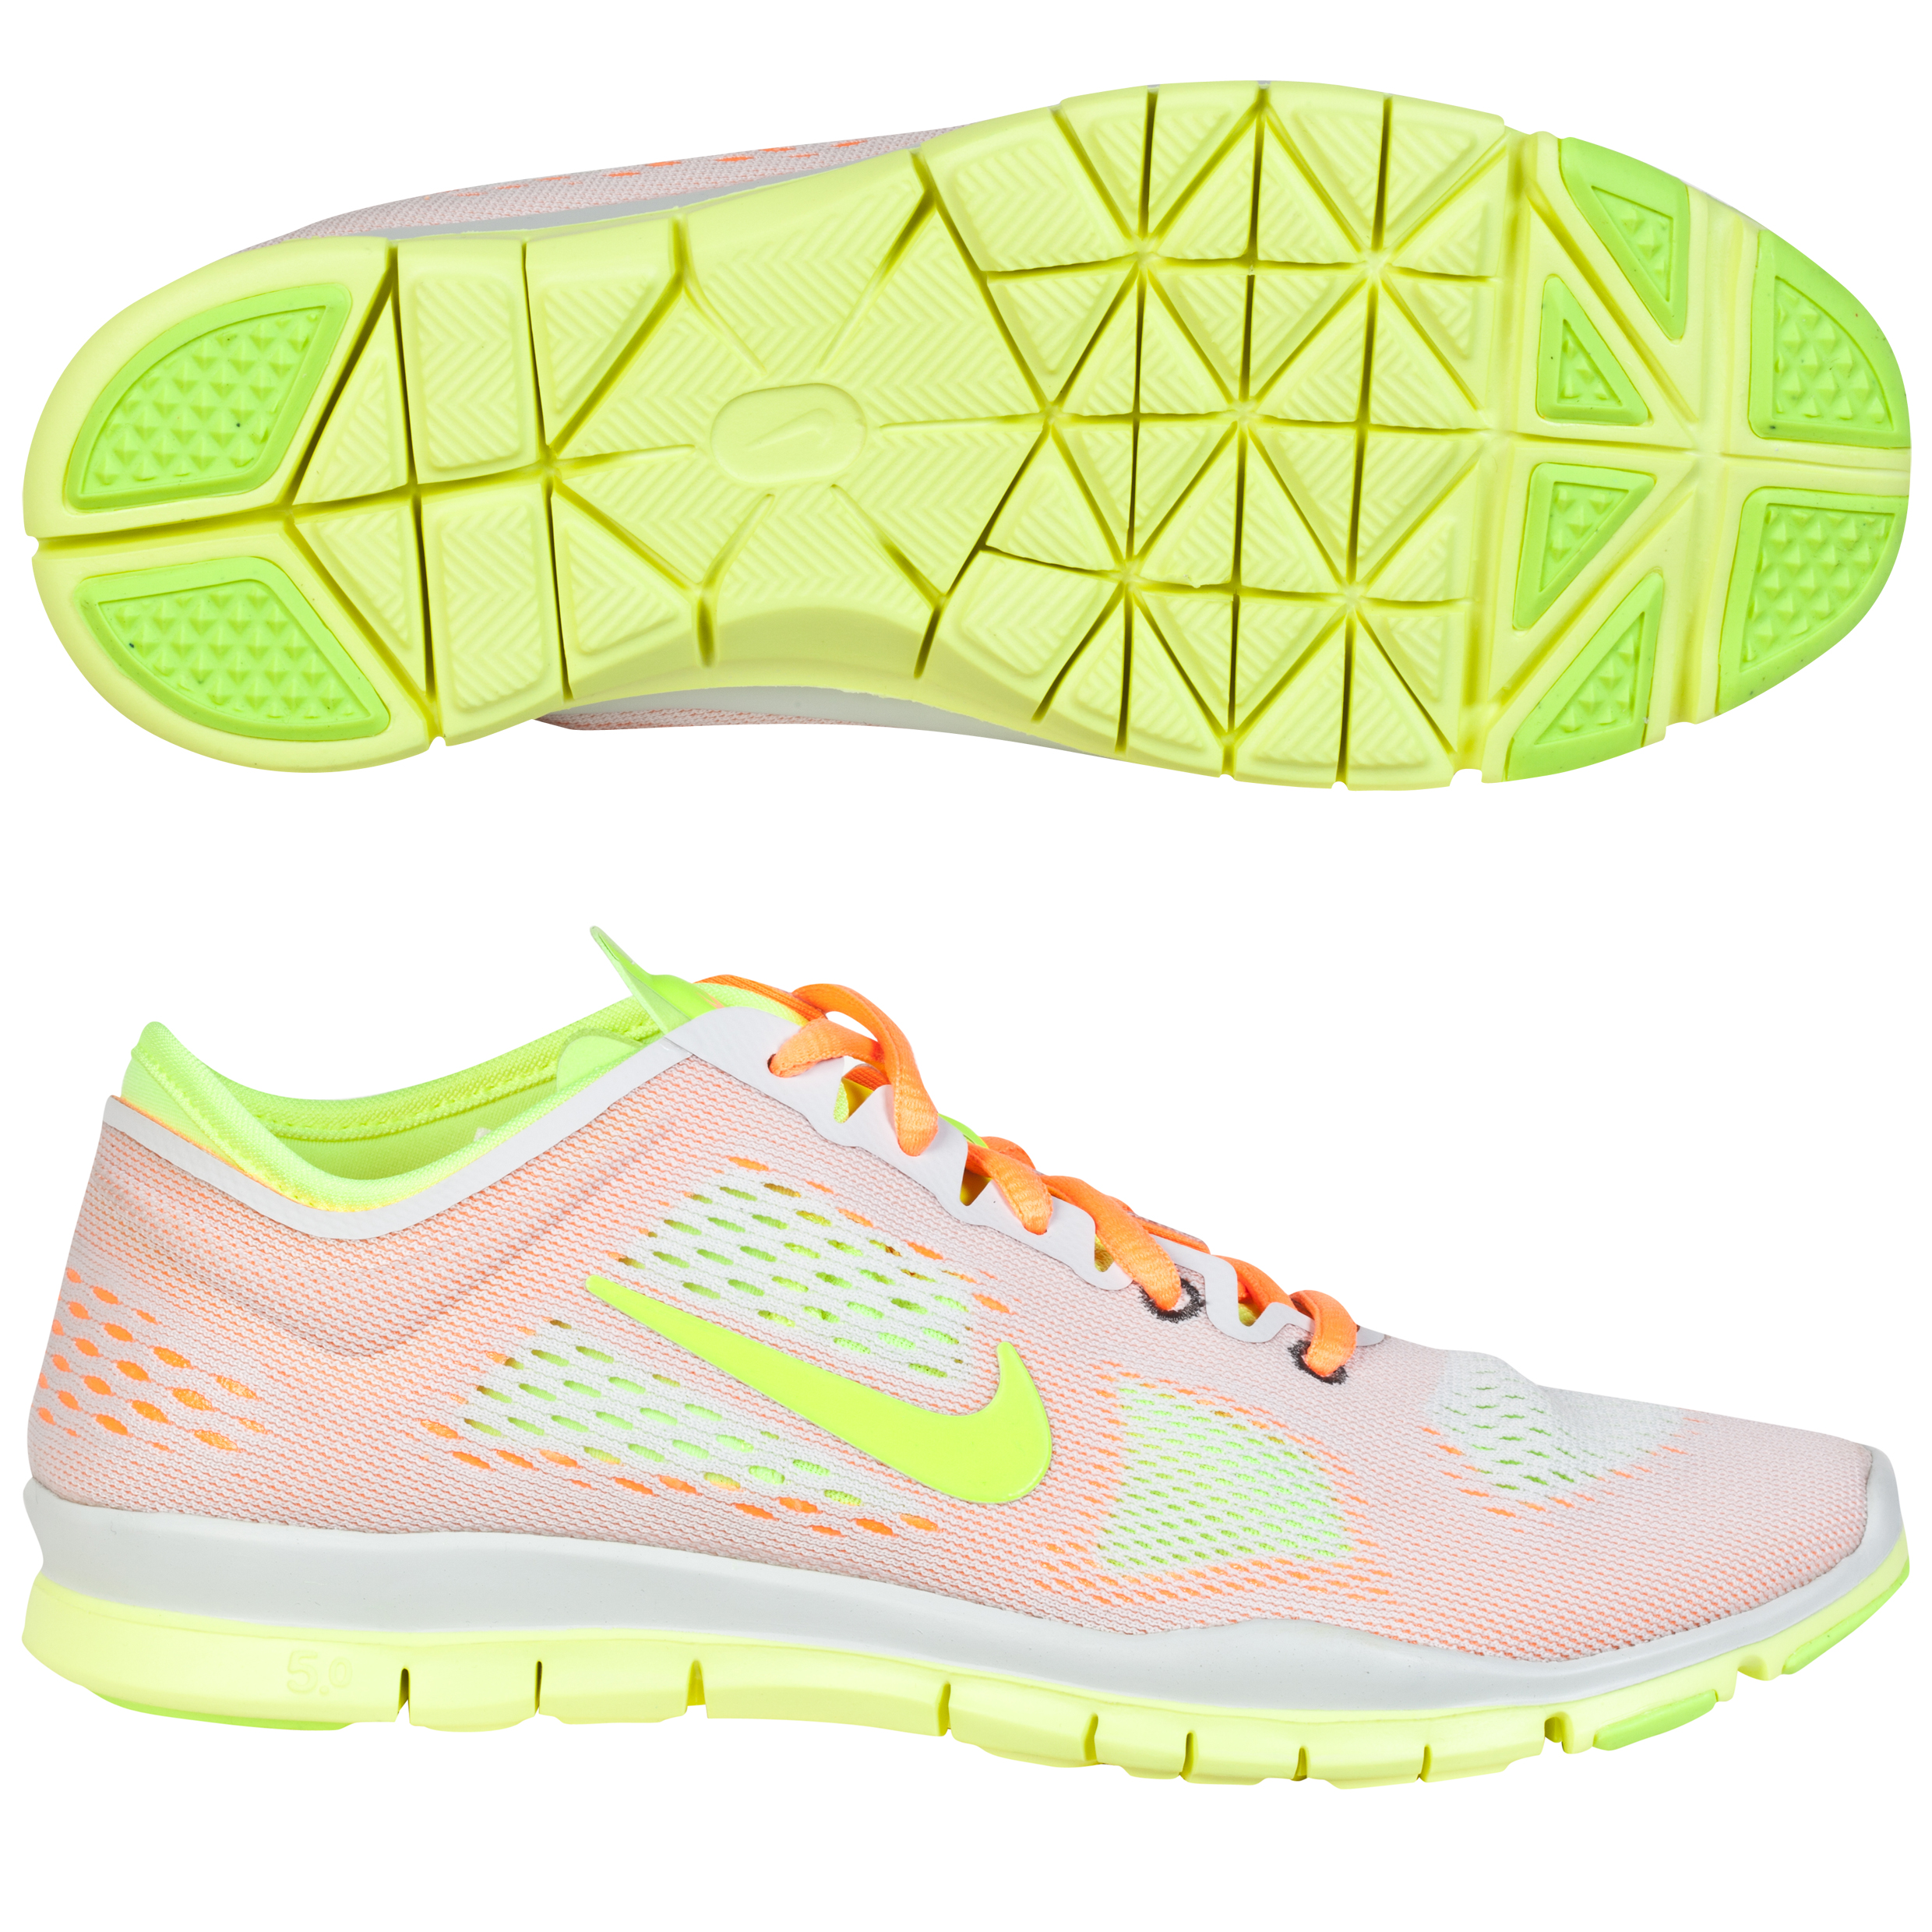 Nike Free TR FIT 4 Trainer Womens Lt Grey